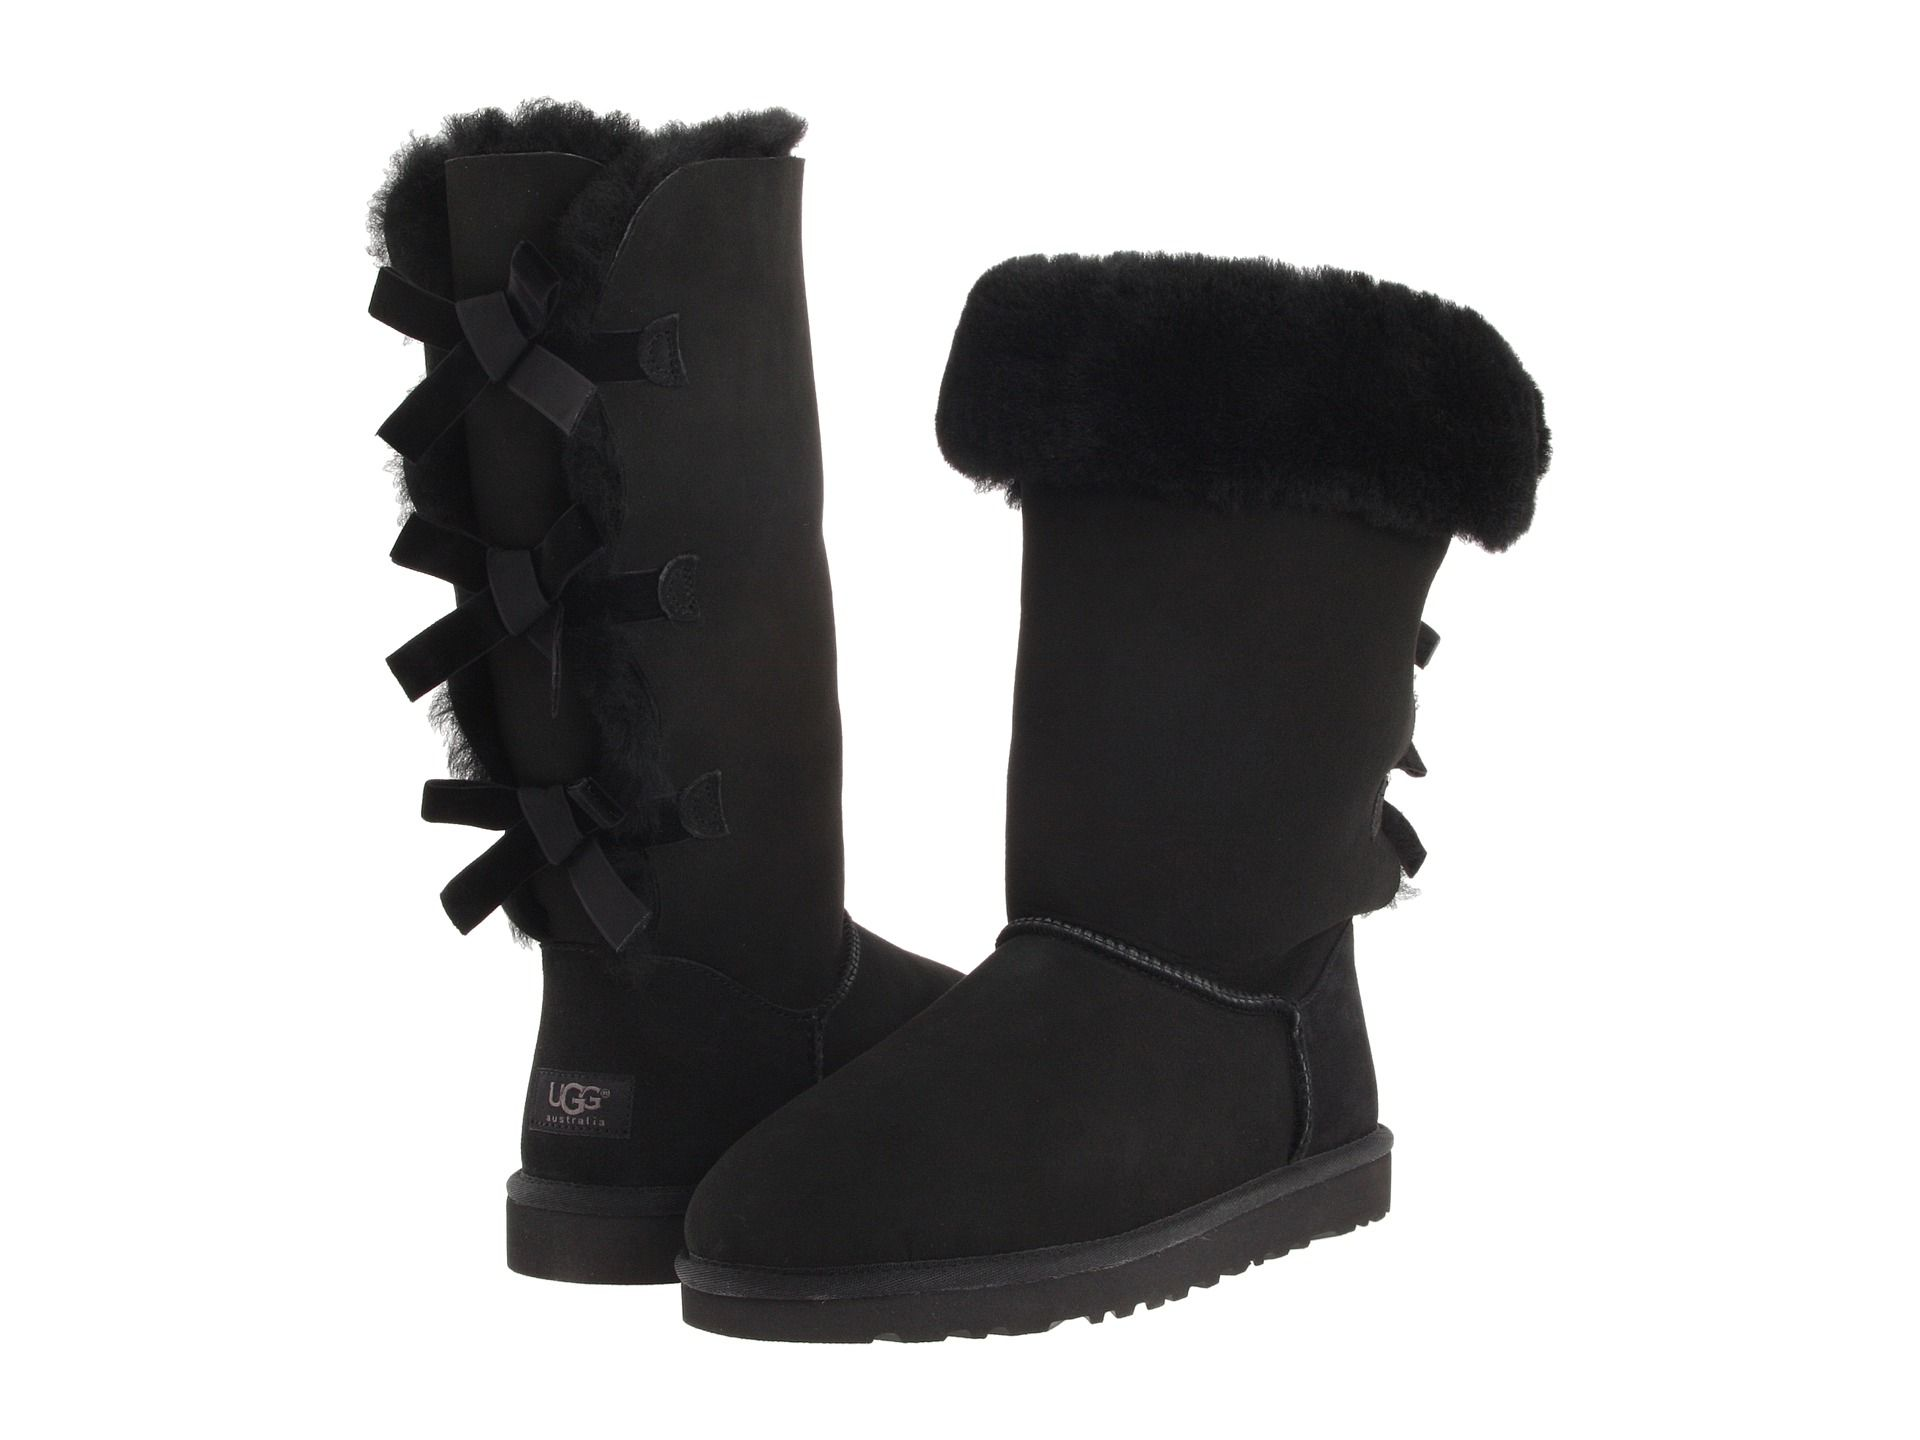 a142d9d61ab UGG Bailey Bow Tall Boot - Zappos Exclusive Black - Zappos.com Free ...